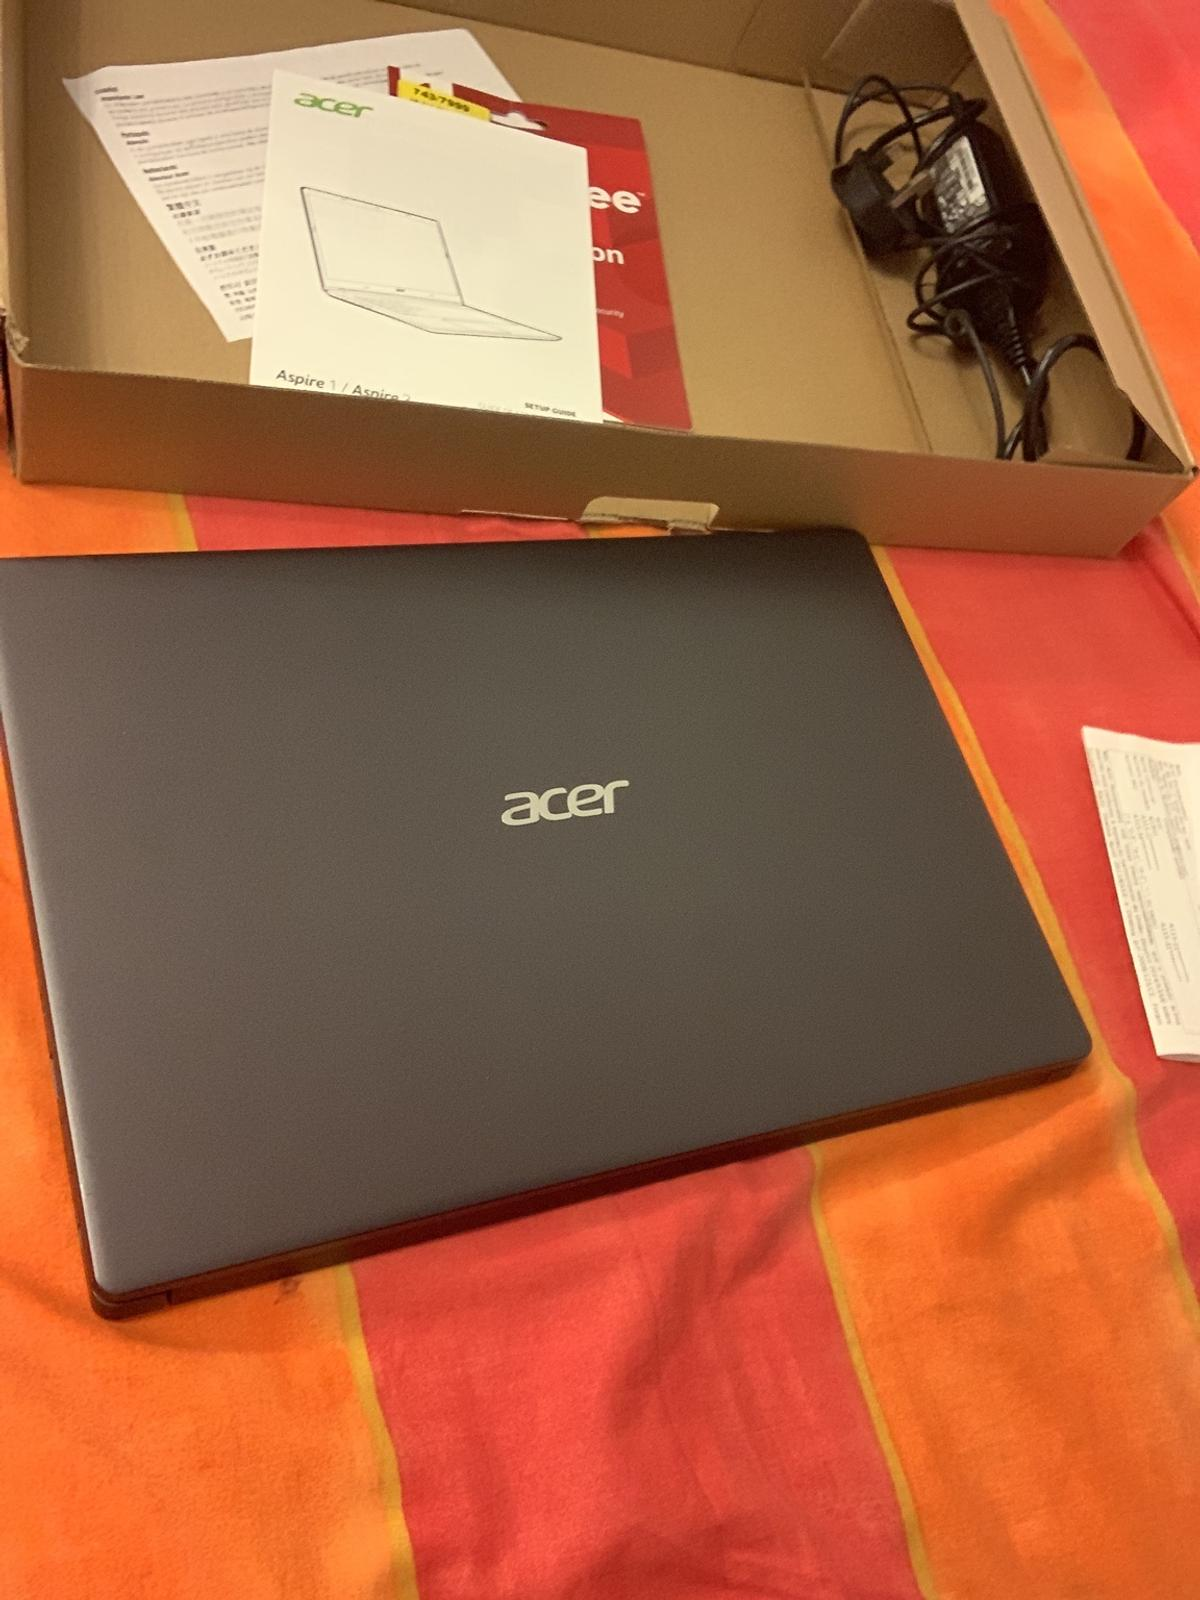 Acer Aspire 3 8gb Ram Amd A9 1tb Radeon Graph In M14 Manchester For 290 00 For Sale Shpock